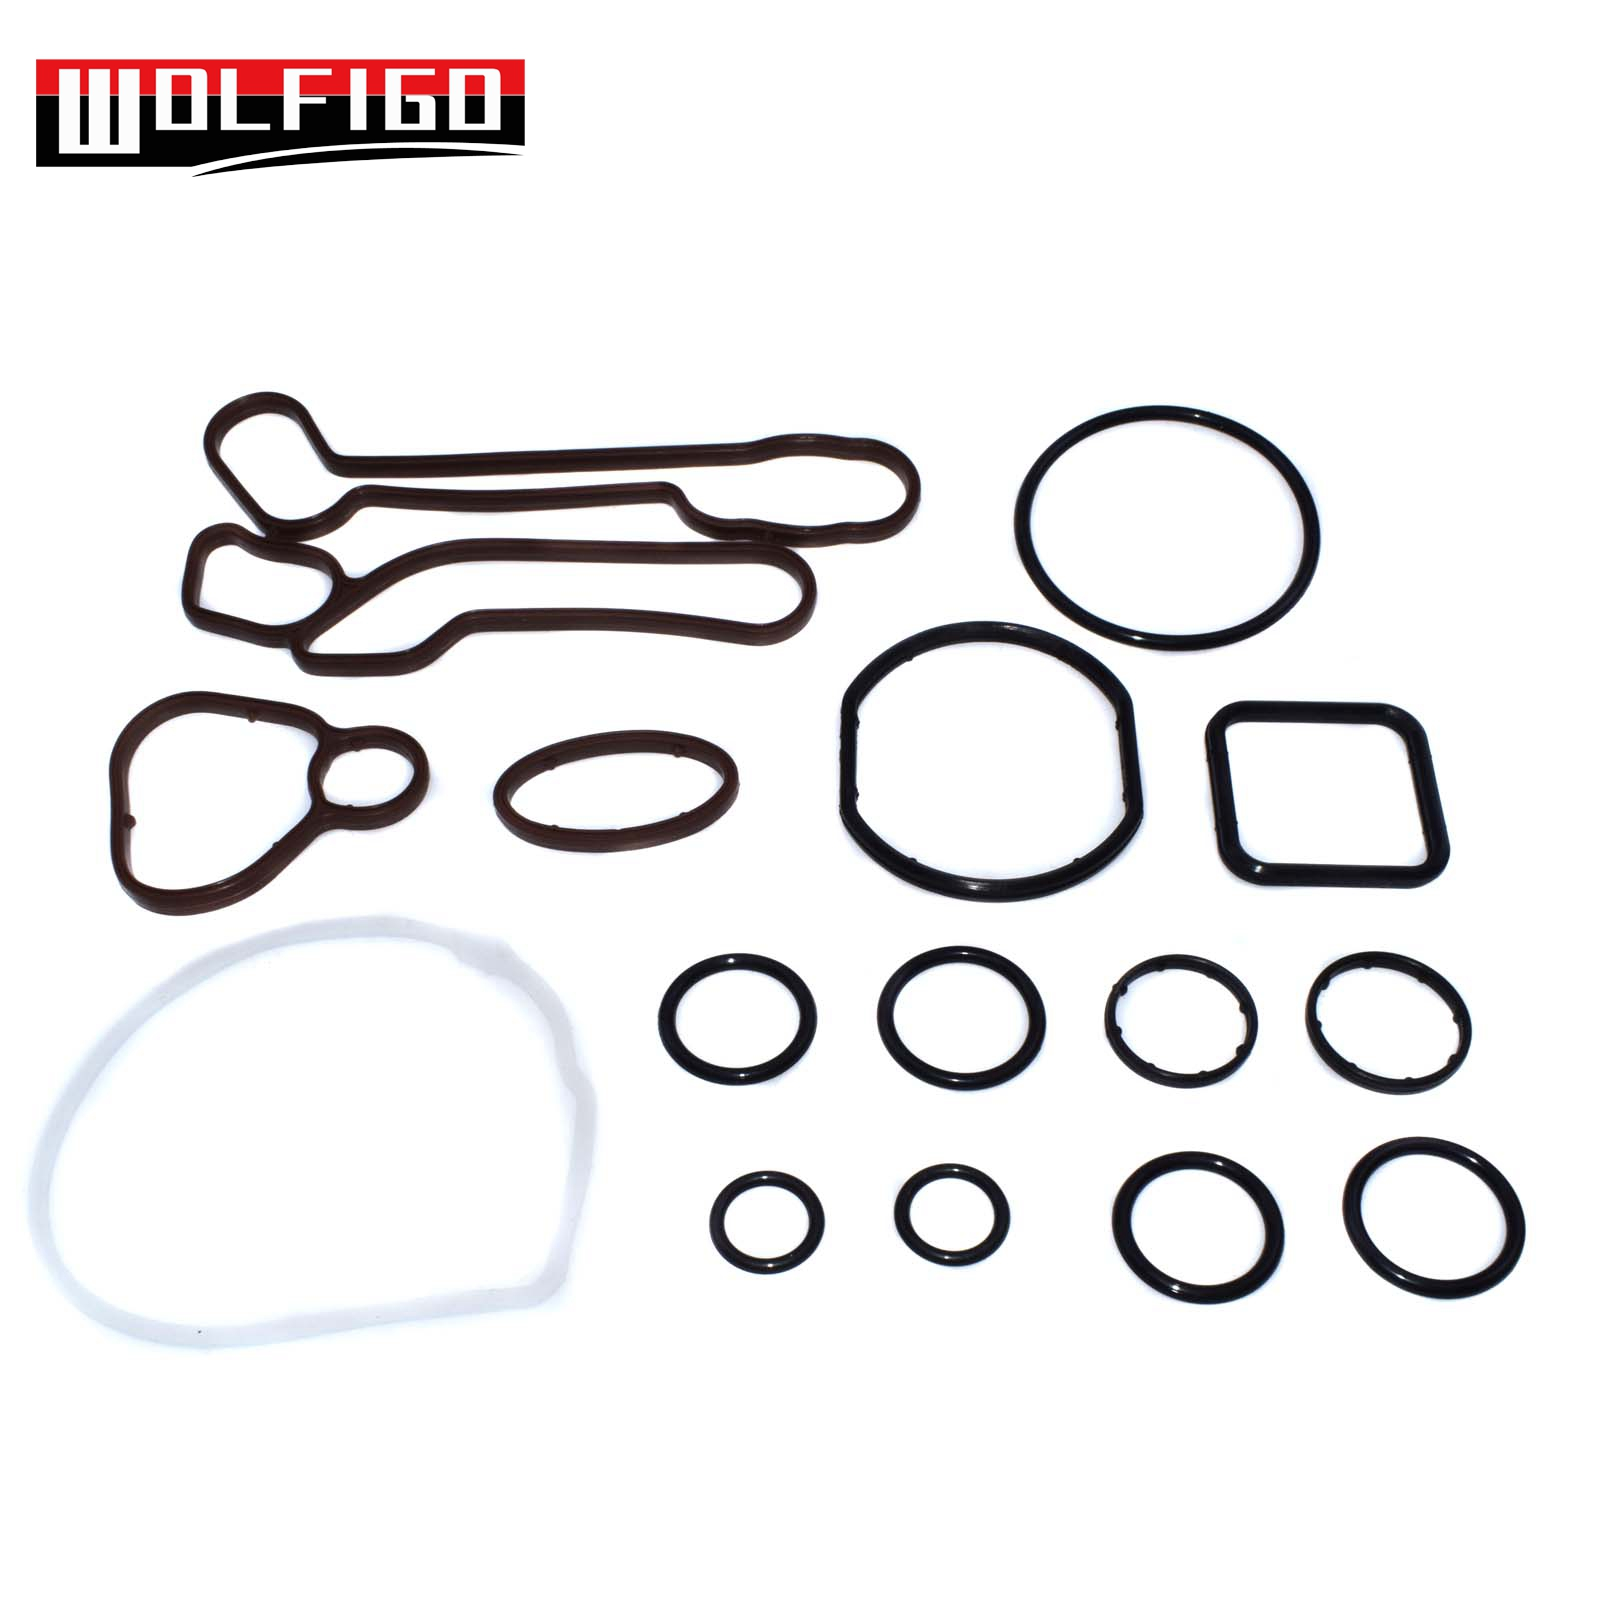 WOLFIGO New 1 Set /10 Sets Engine Oil Cooler Gasket Seal Kit For Chevrolet Aveo G-M Opel Pontiac 5650972,5650962,55571687 image